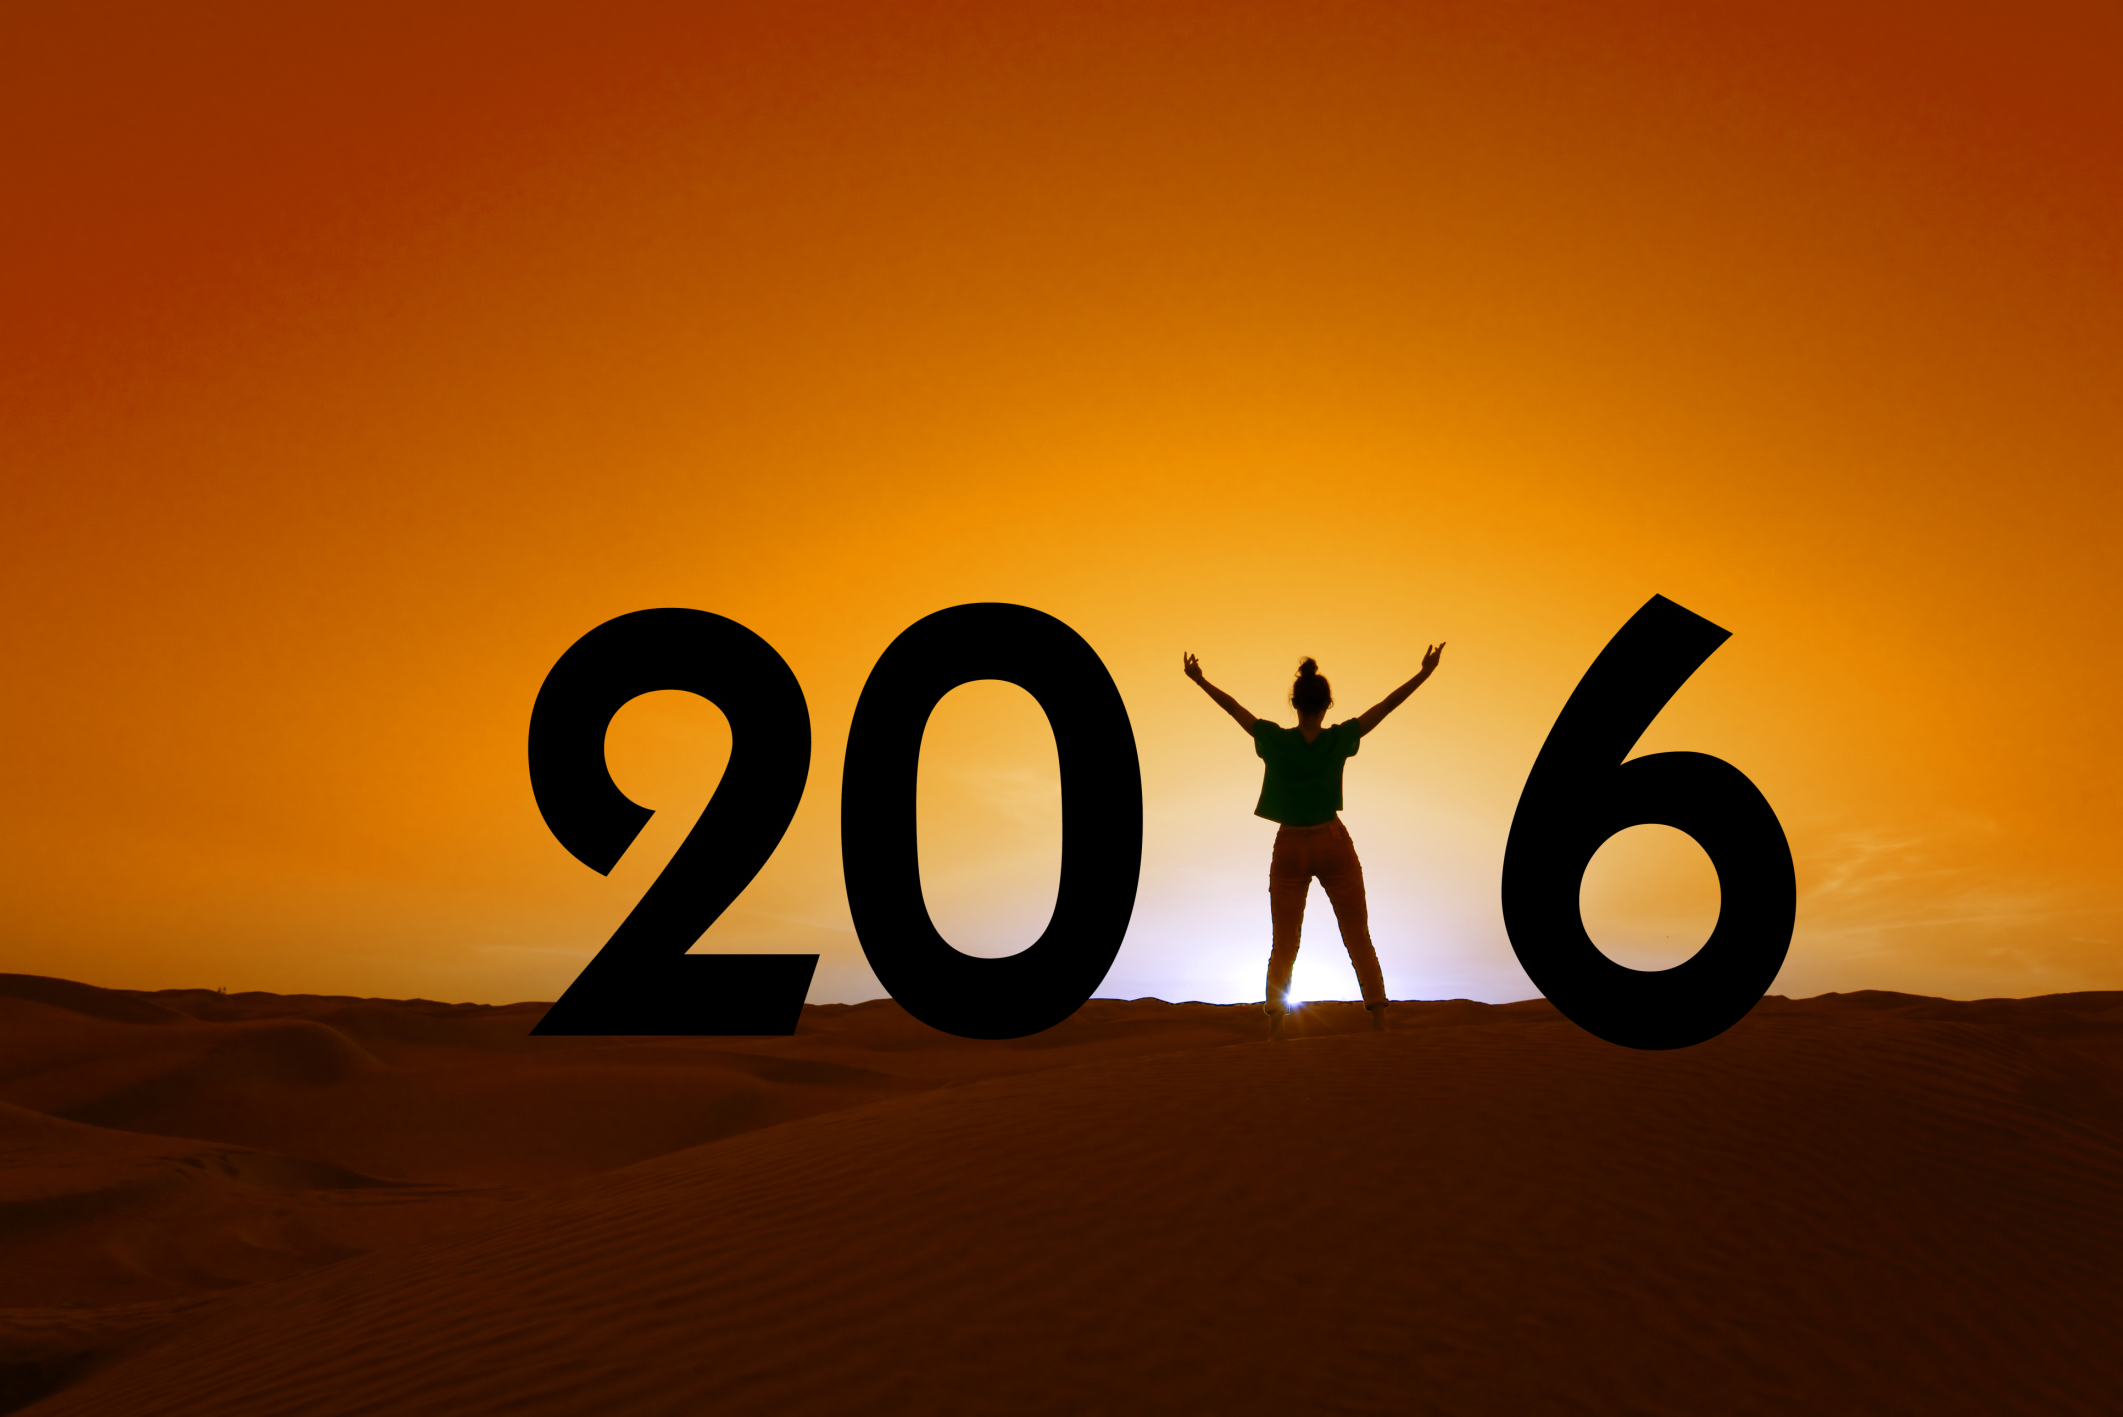 kindness yoga, new year's resolutions, new year challenge, george peele, orange peel moses, new year's resolution